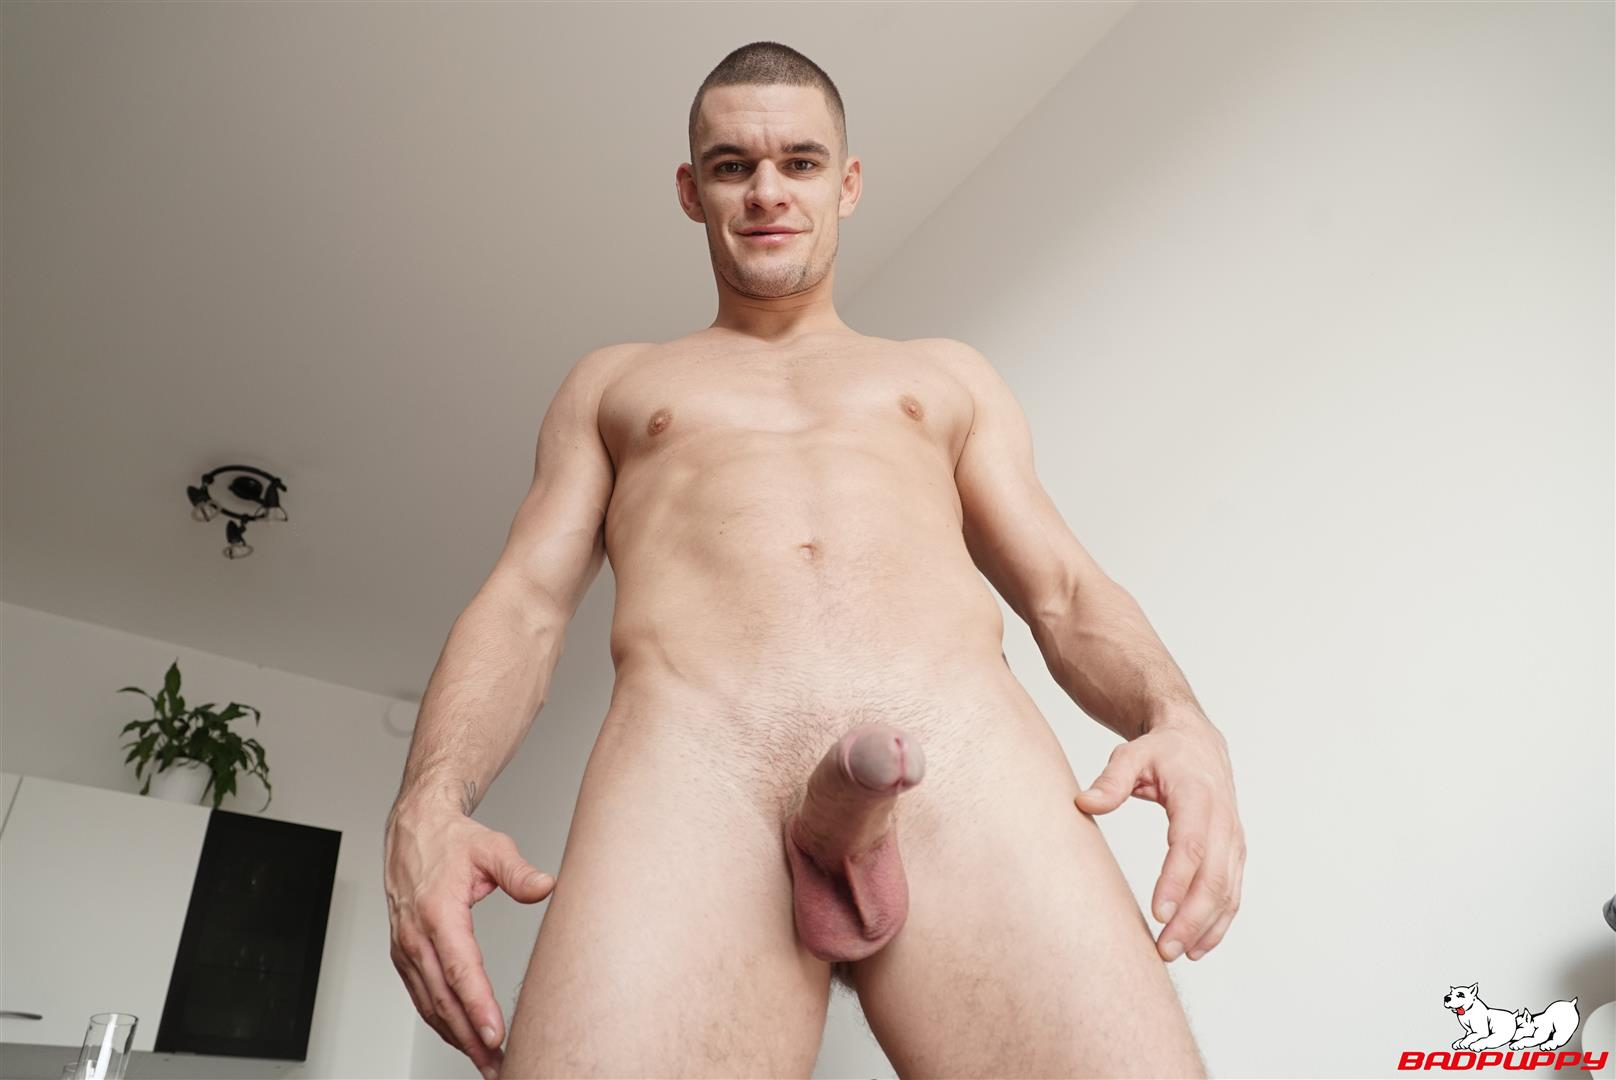 Badpuppy-Max-Dior-Big-Uncut-Cock-Jerkoff-Video-13 Waking Up From A Nap And Jerking Off My Big Uncut Cock